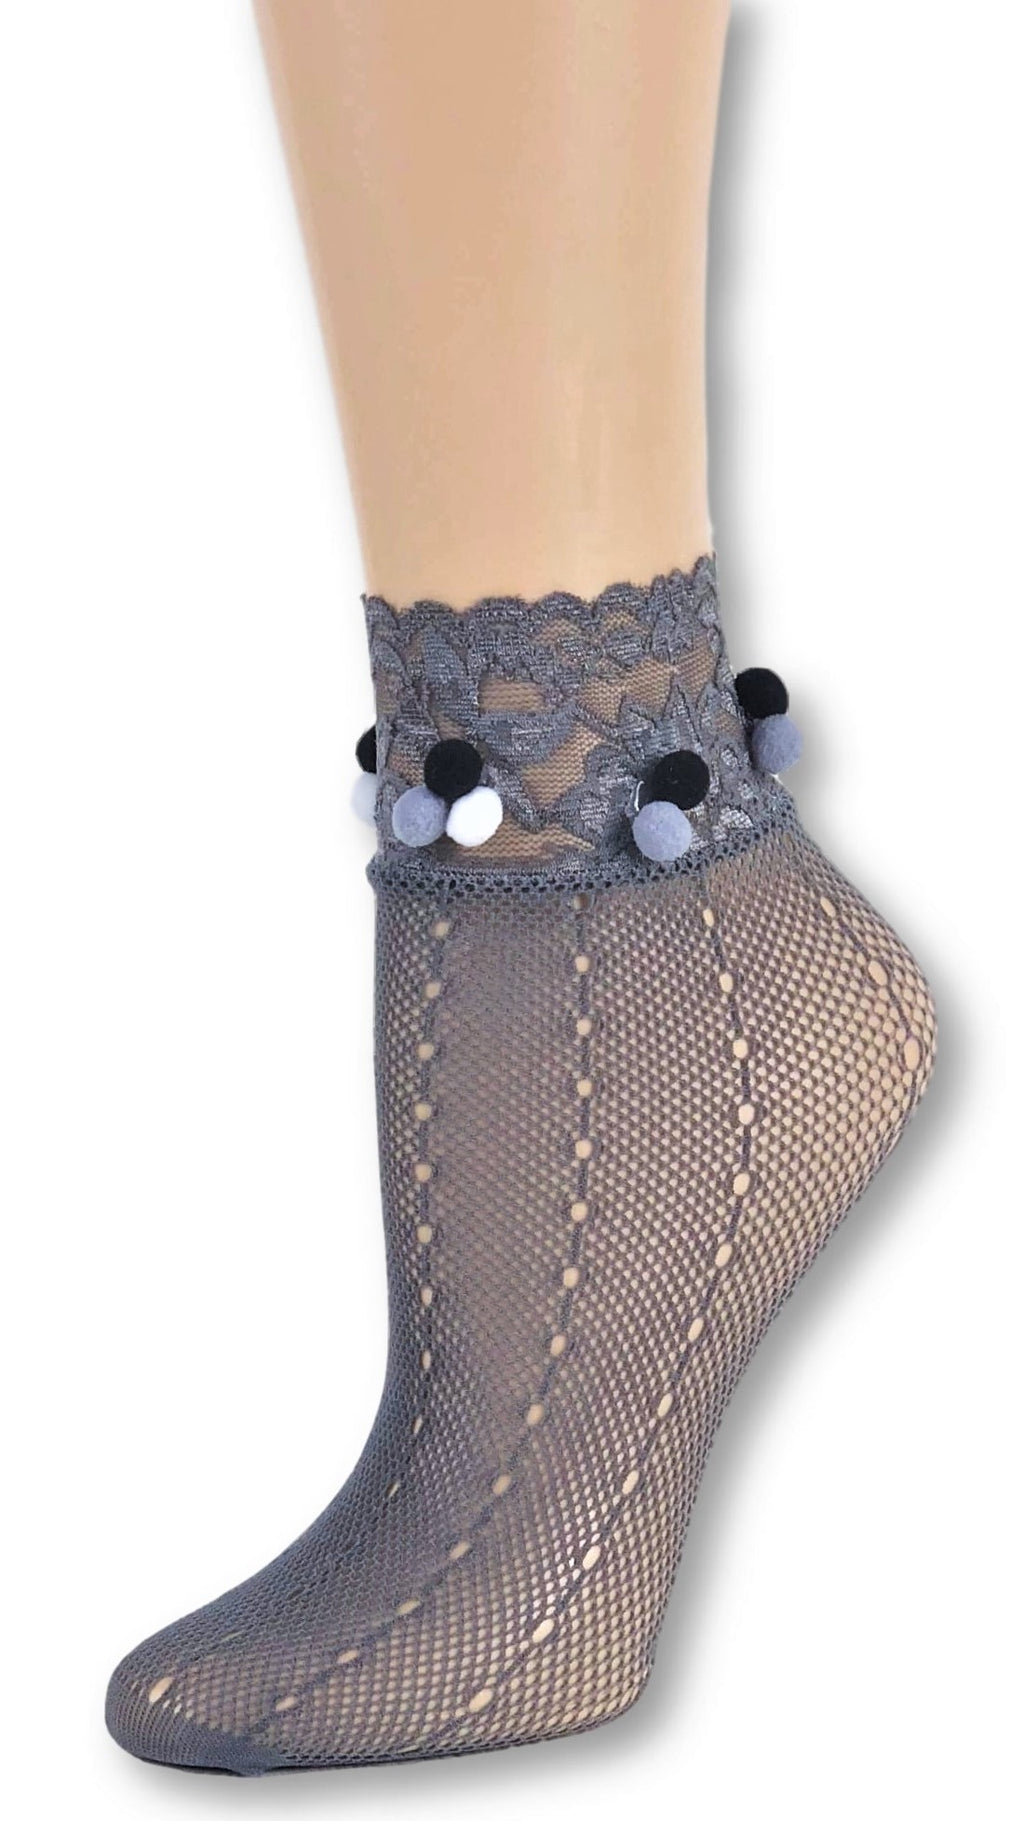 Dashing Grey Custom Mesh Socks with pompom - Global Trendz Fashion®